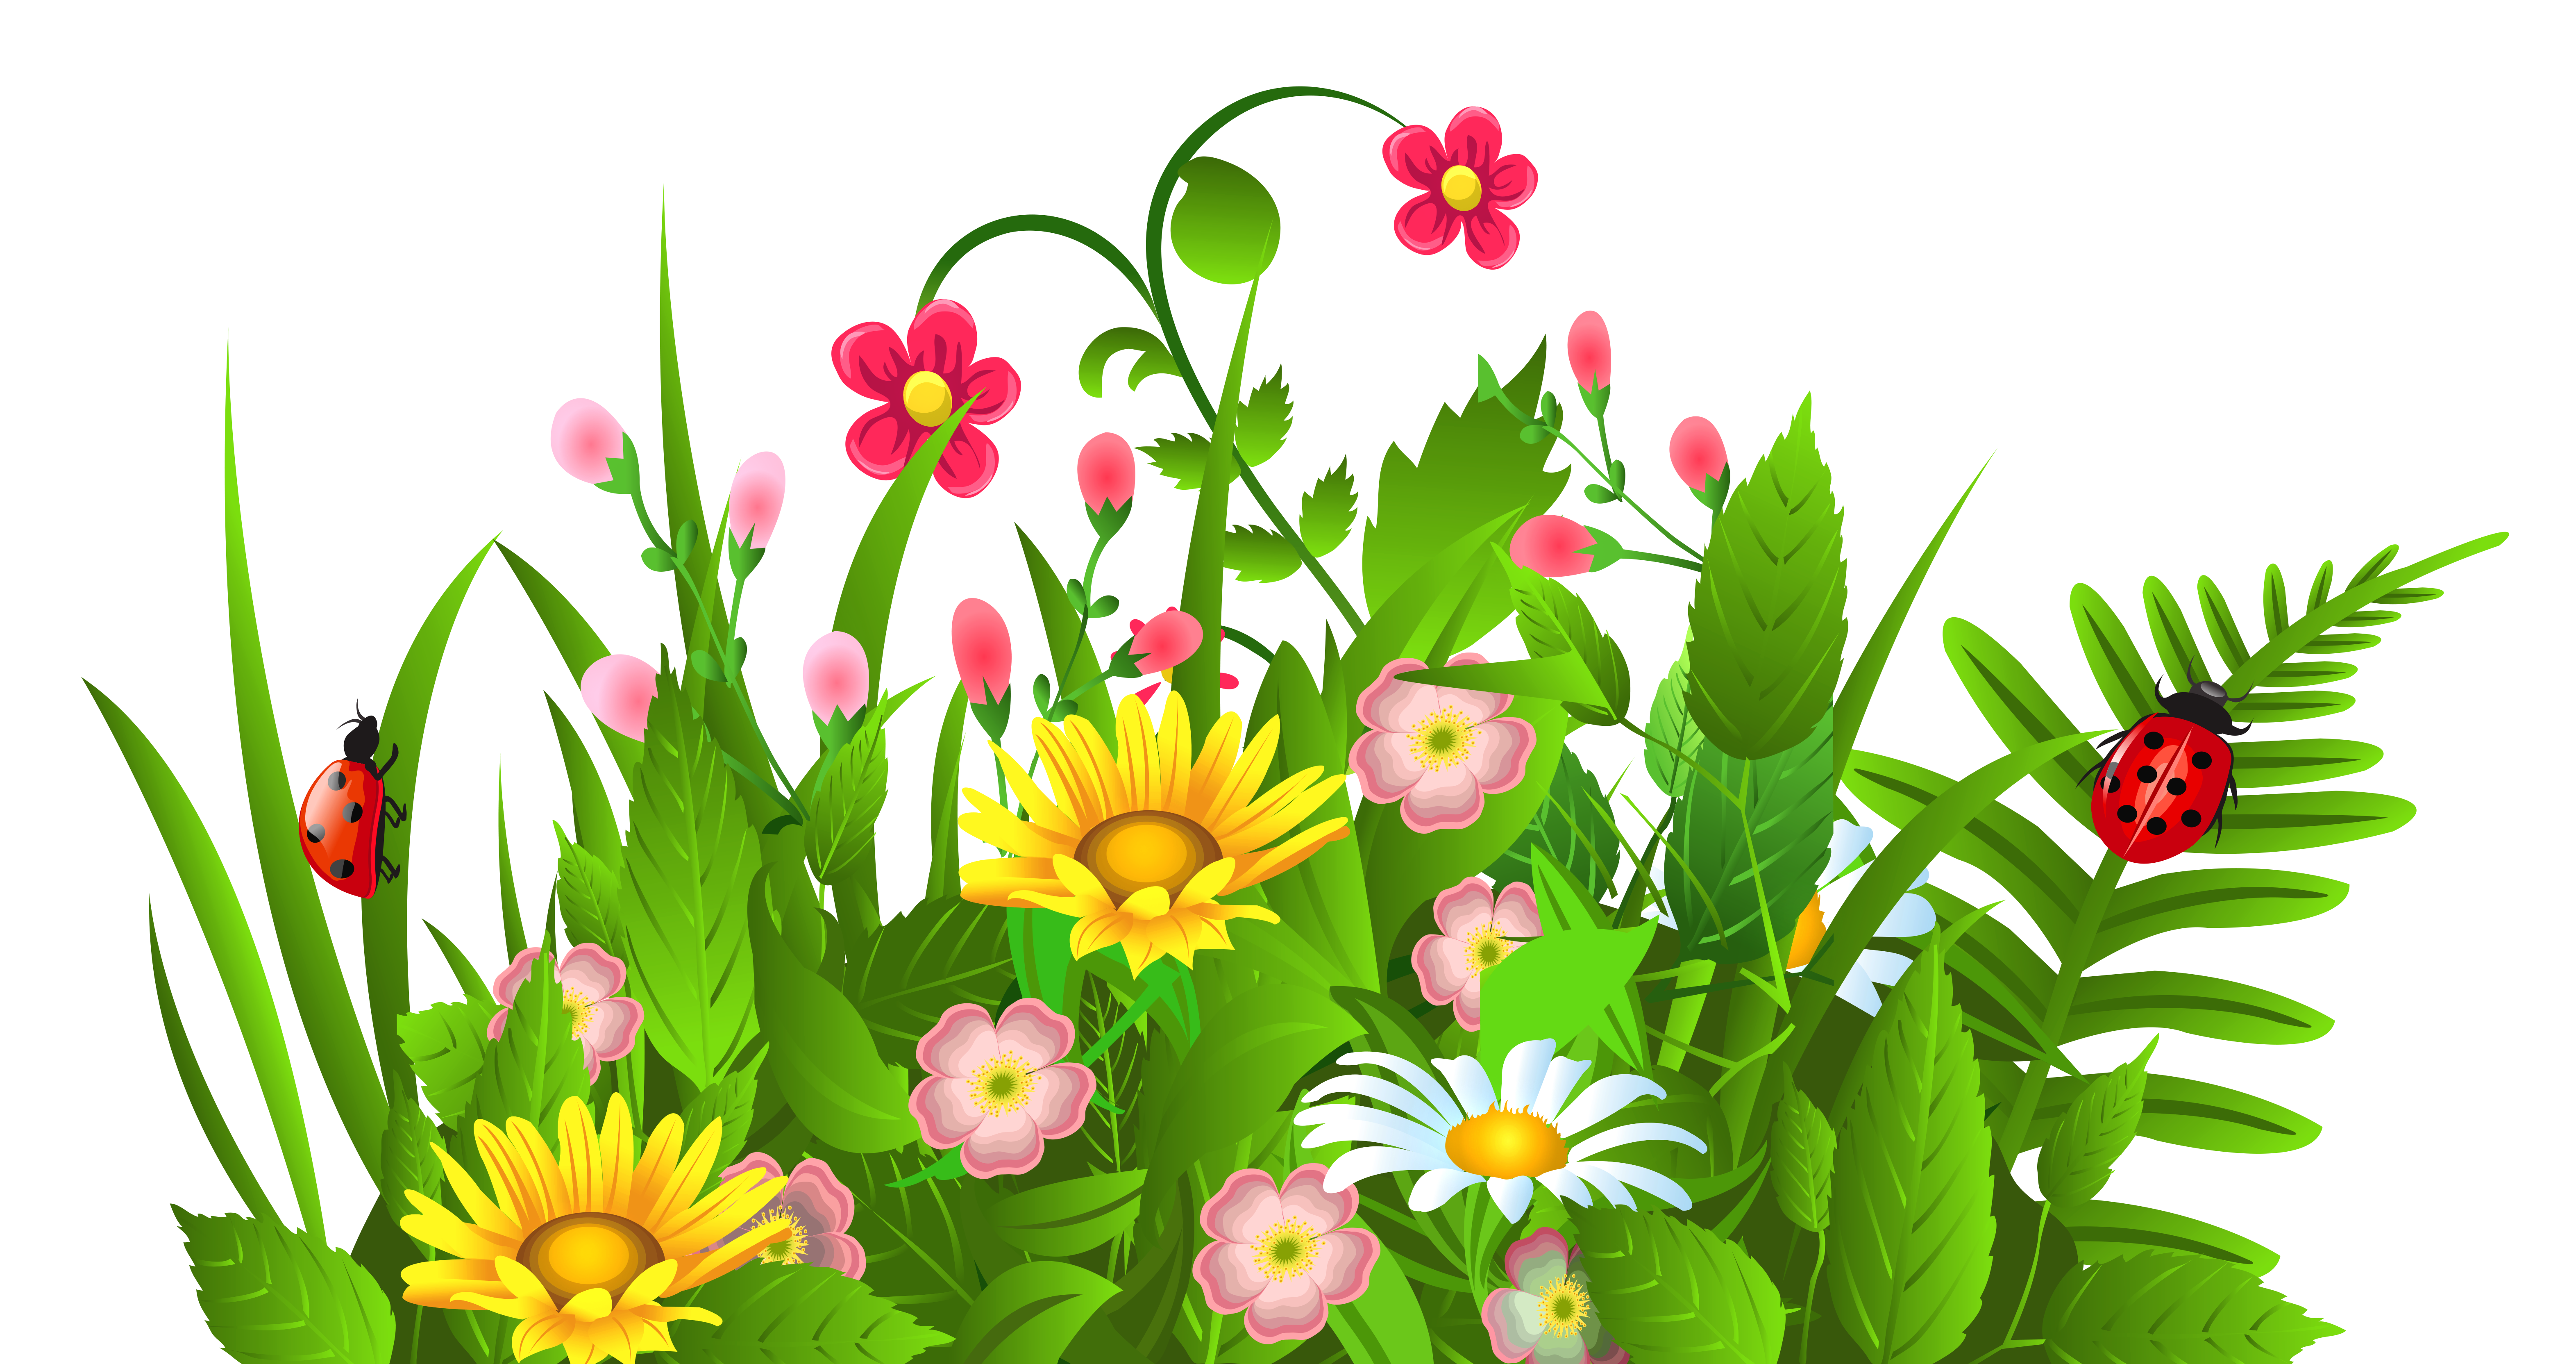 Free clipart images of flowers flower clip art pictures image 1 - Clipartix